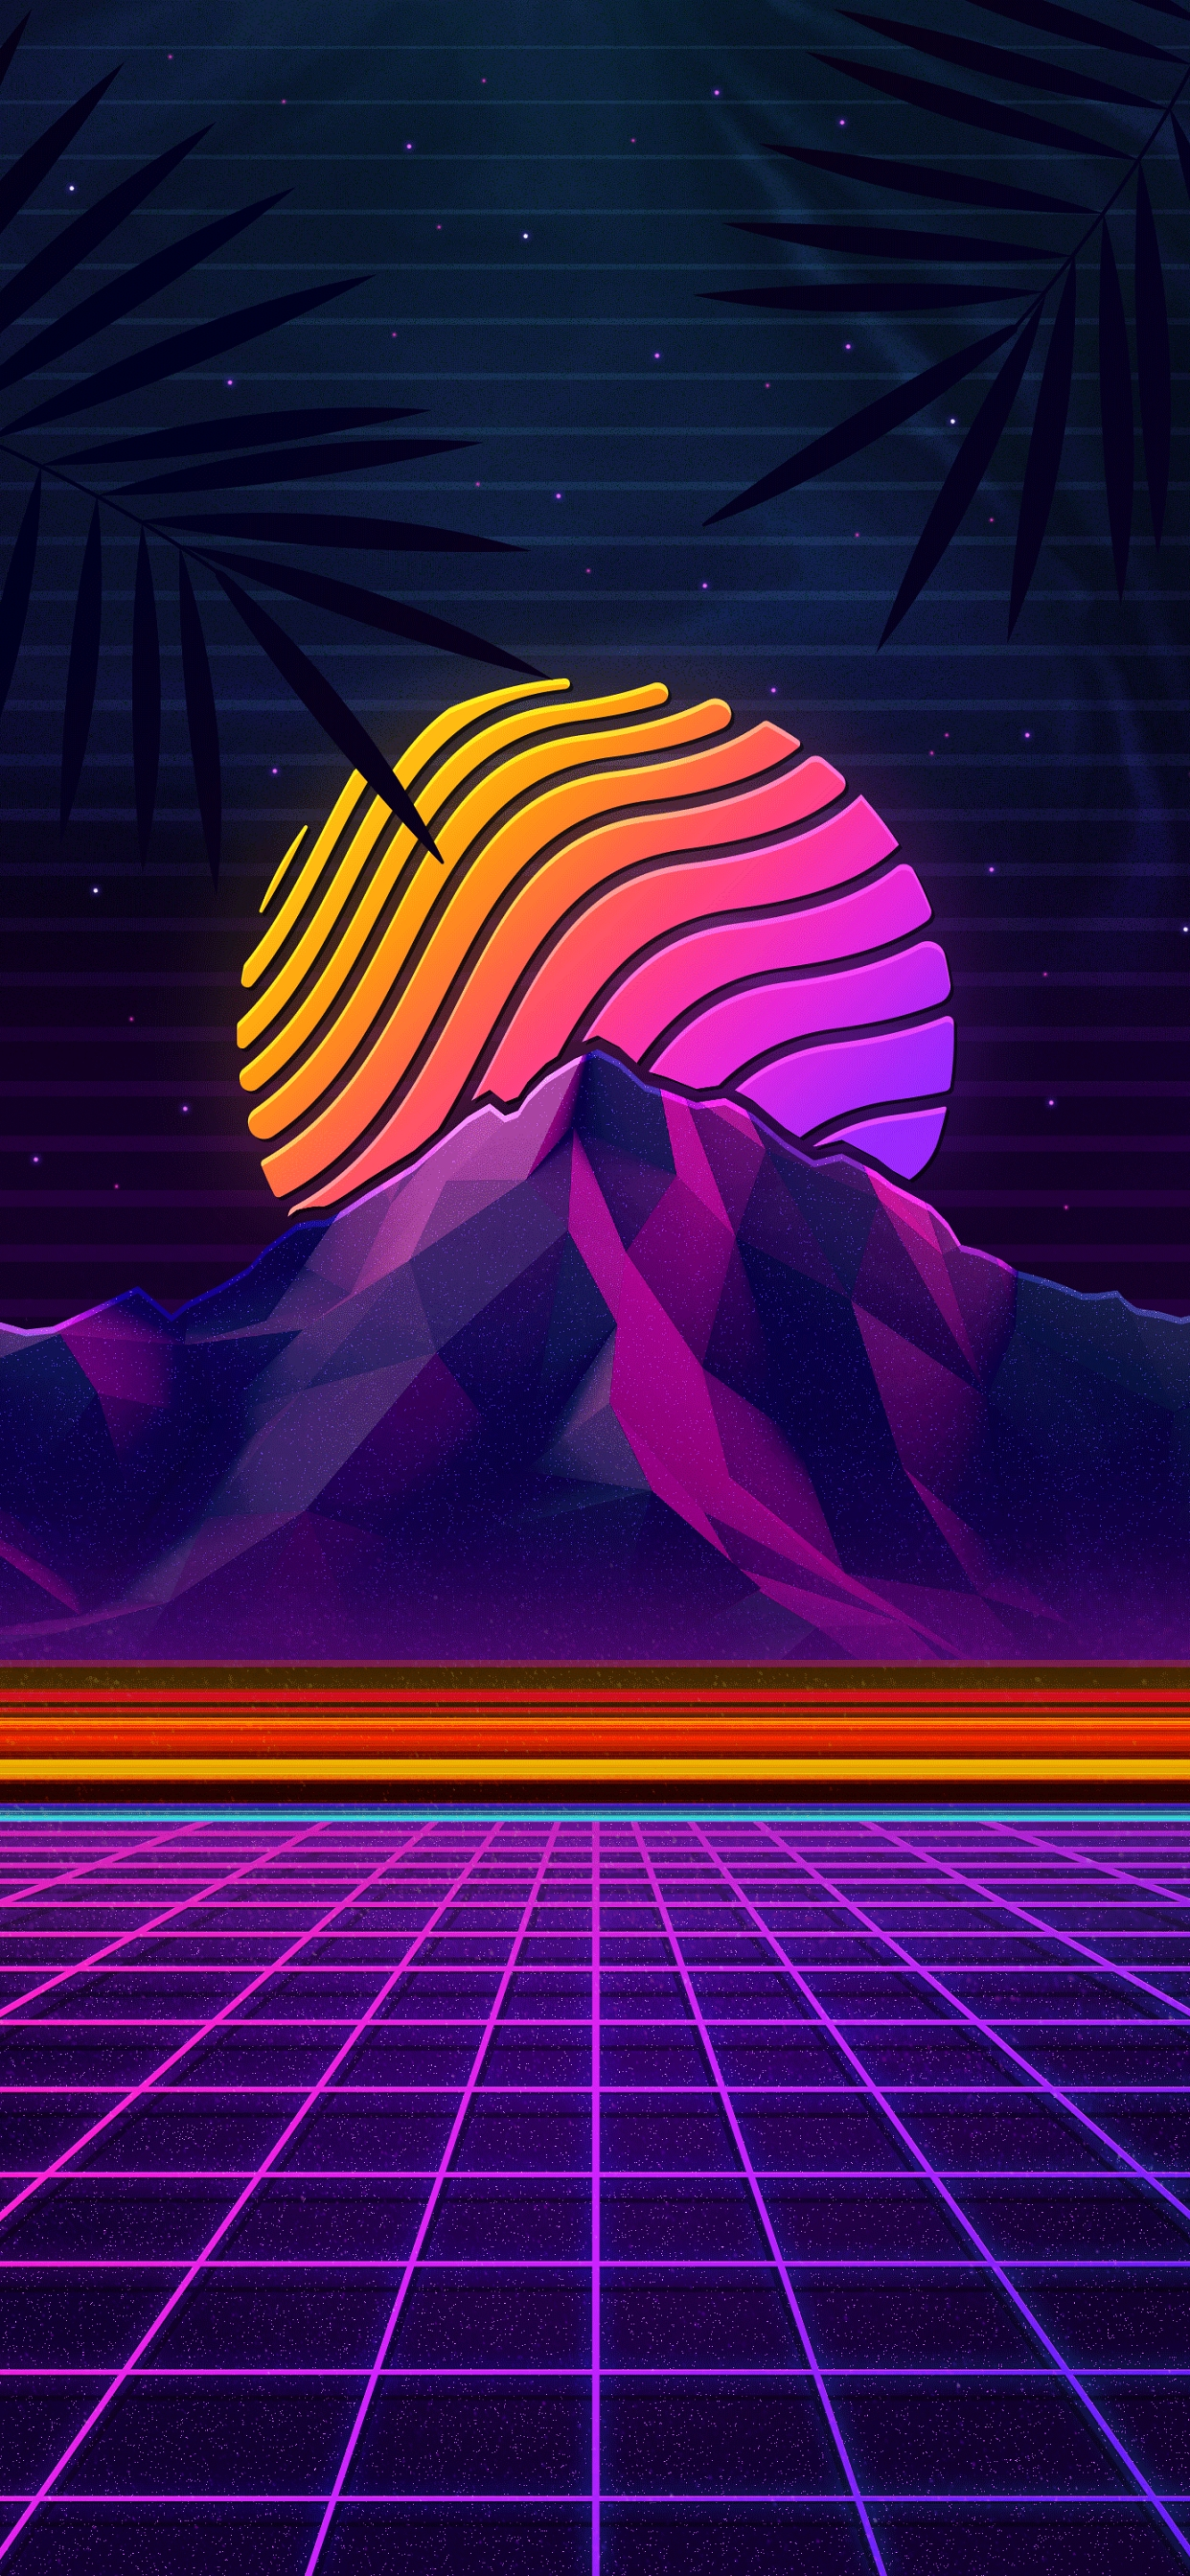 Wallpaper hd retro wave futuristic style outrun for iphone and android devices